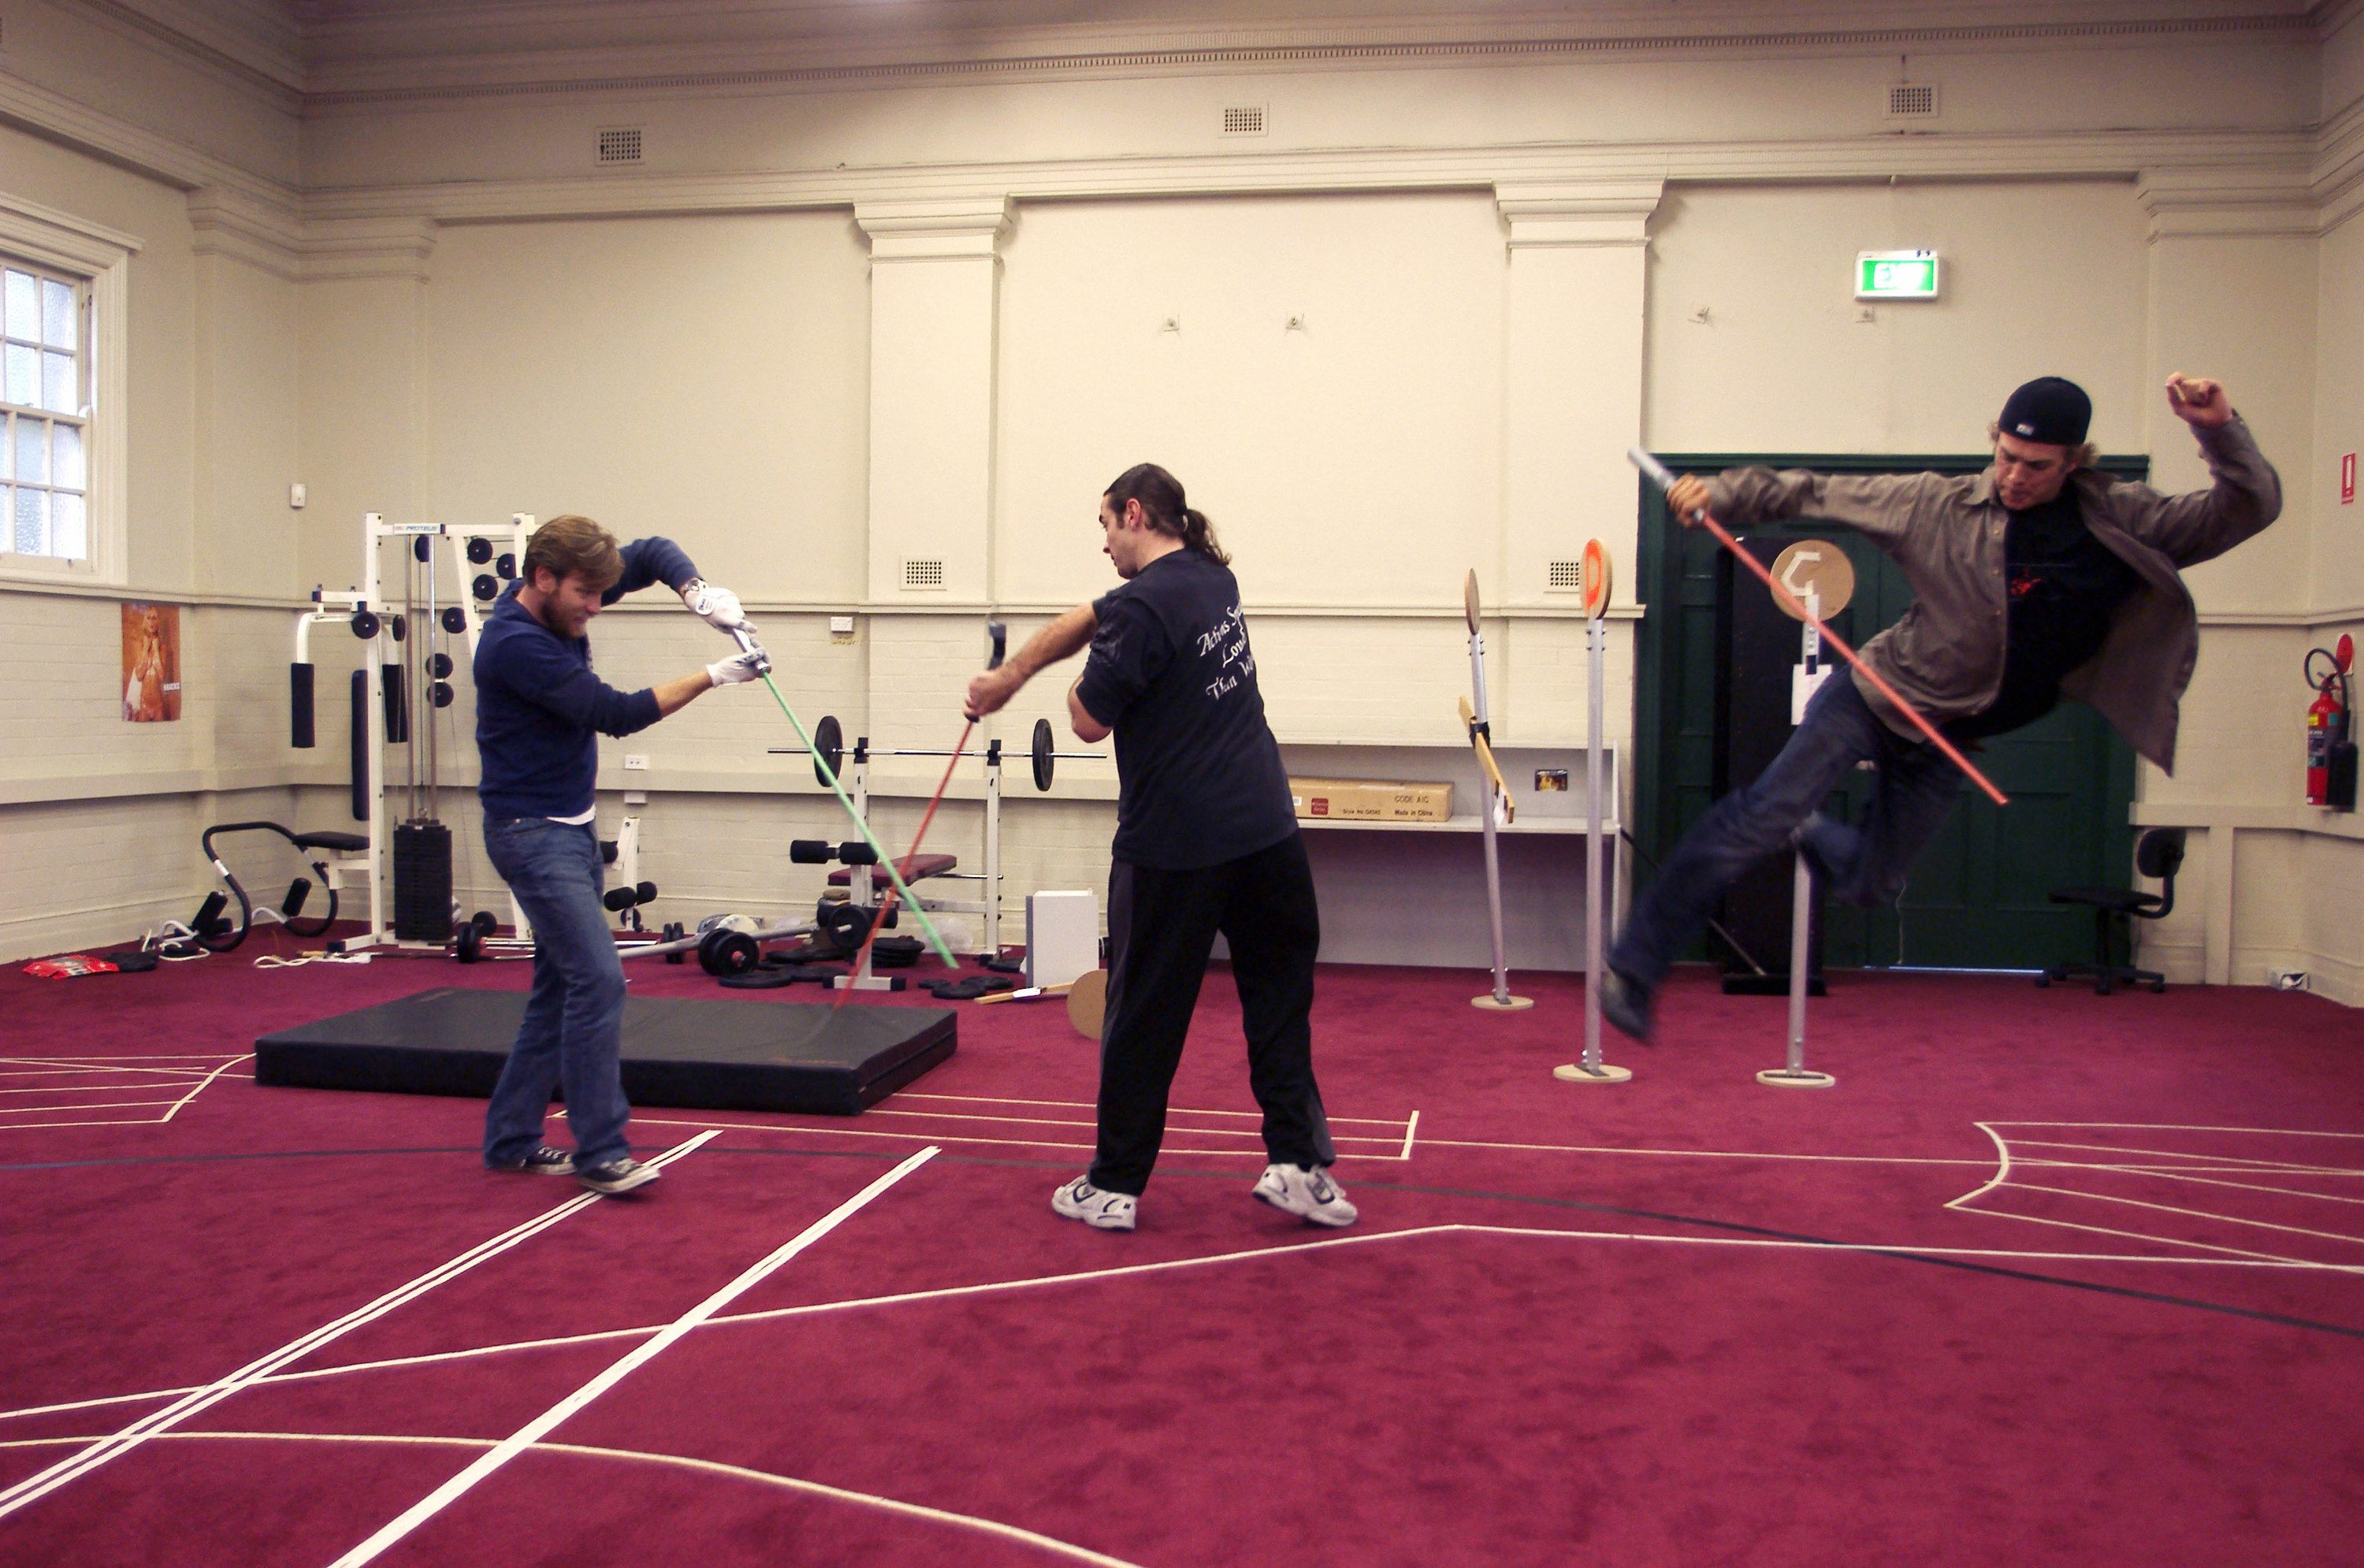 Ewan McGregor and a stunt double practicing a light saber fight with sticks in a gym as Hayden jumps and does a kick while holding a stick